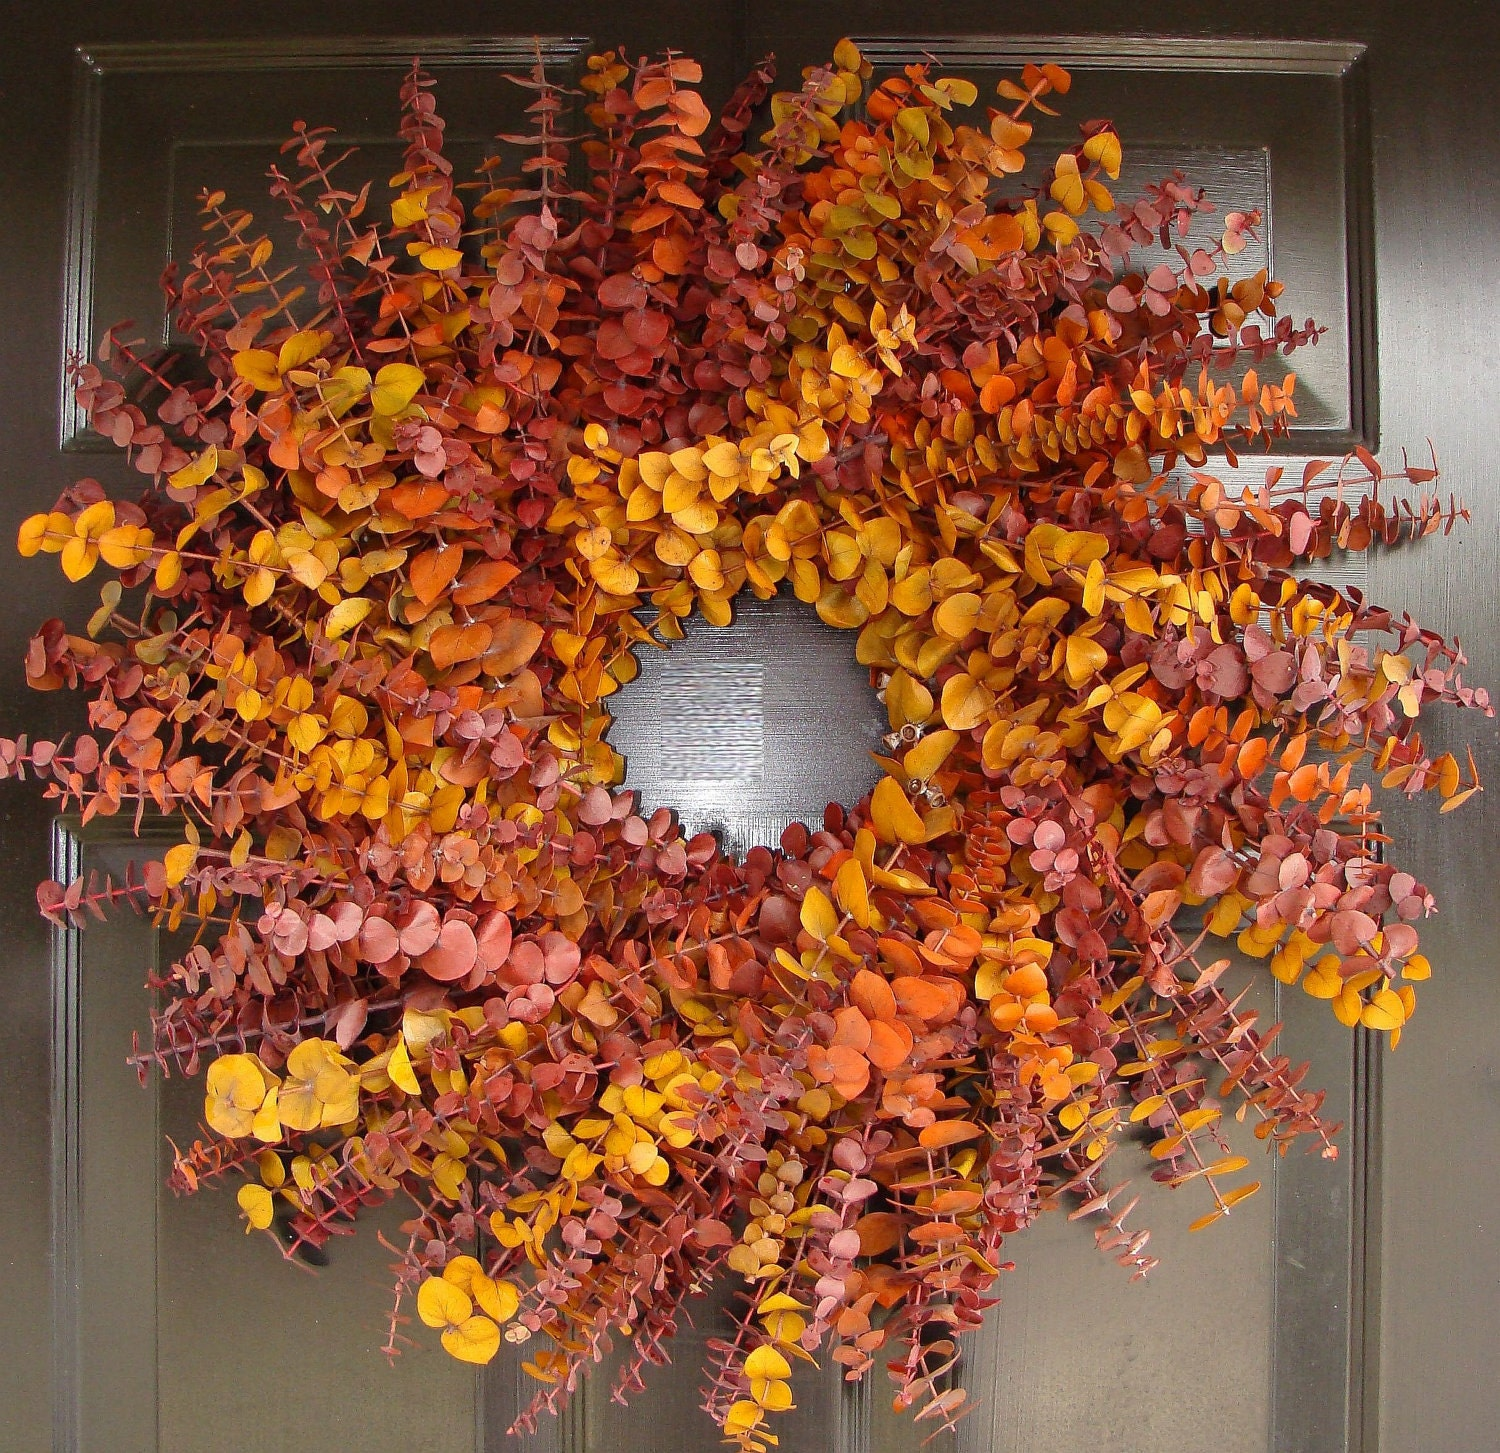 Autumn Wreath- Eucalyptus Dried Floral Fall Wreath- Fall Eucalyptus Wreath- Thanksgiving Wreath- Holiday Wreath Decor - elegantholidays